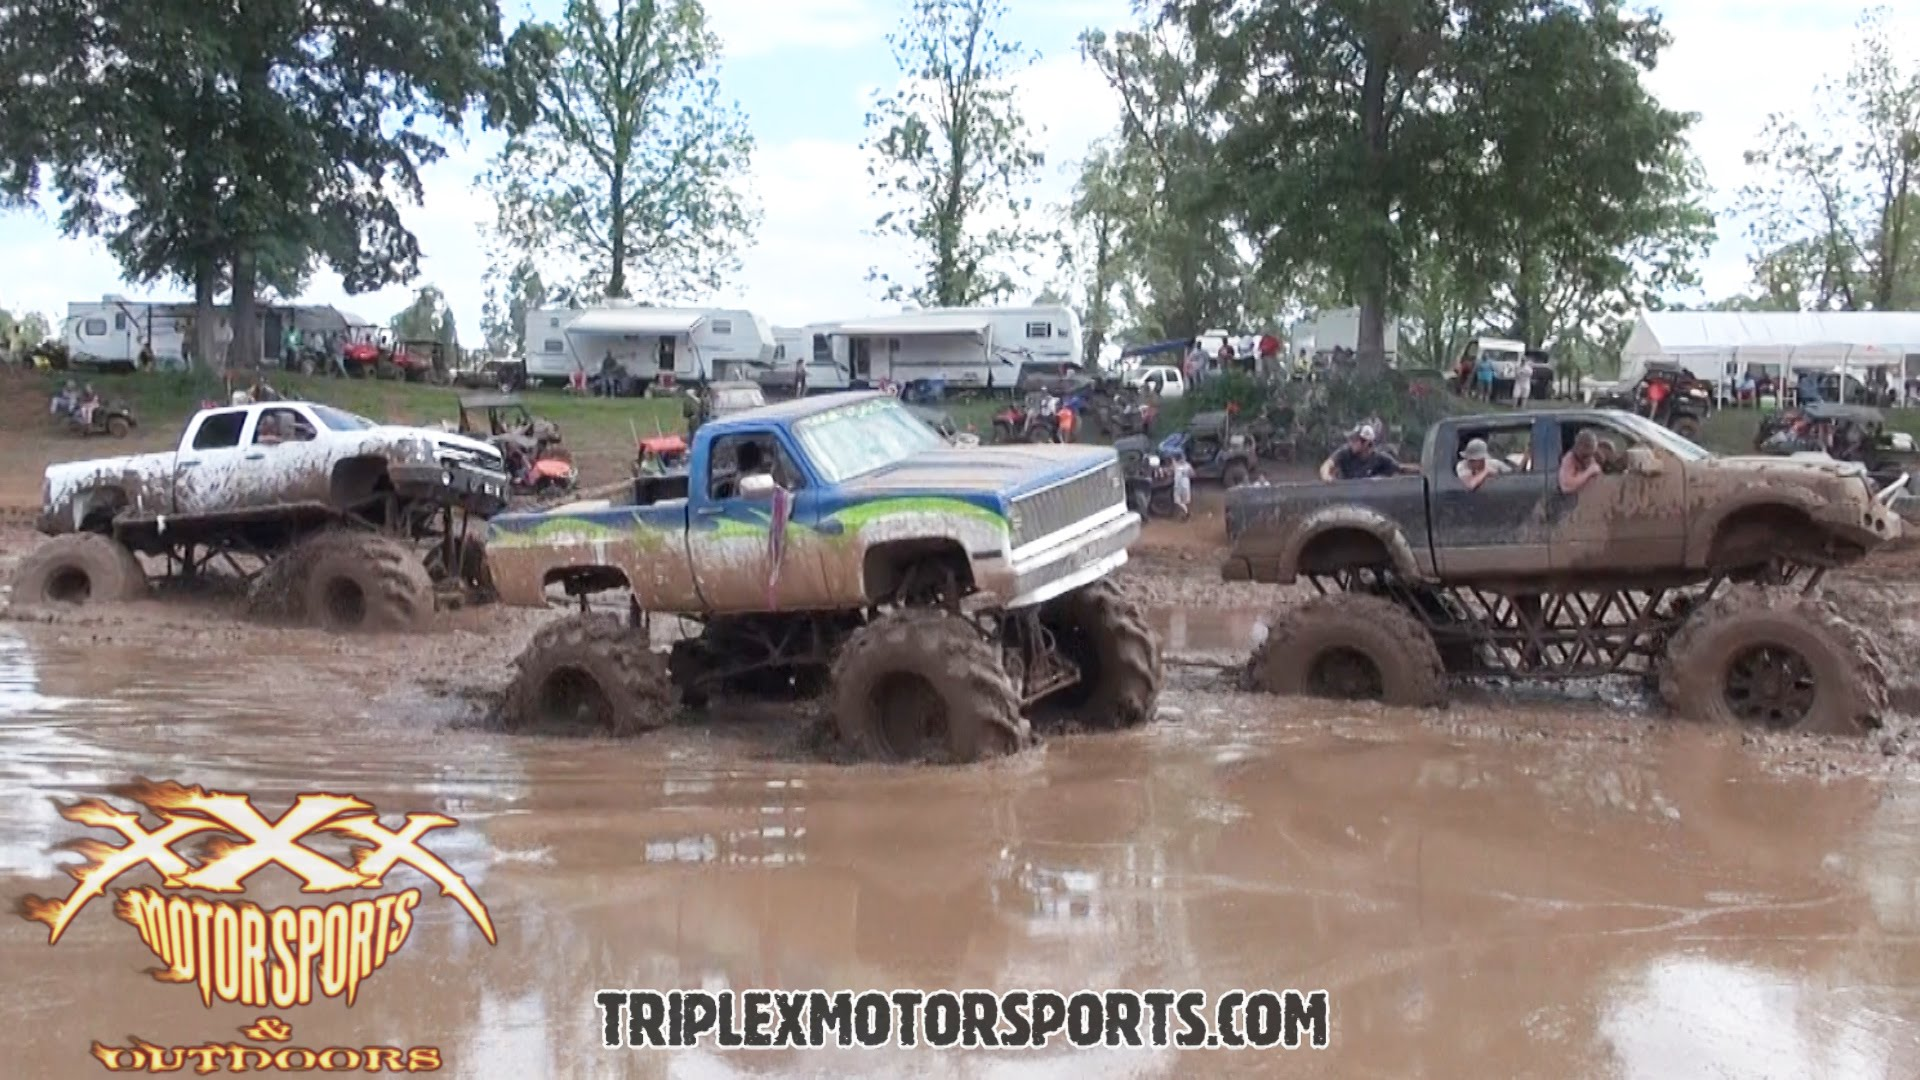 Check Out The Absolute CARNAGE From Louisiana Mudfest Trucks Gone Wild Weekend